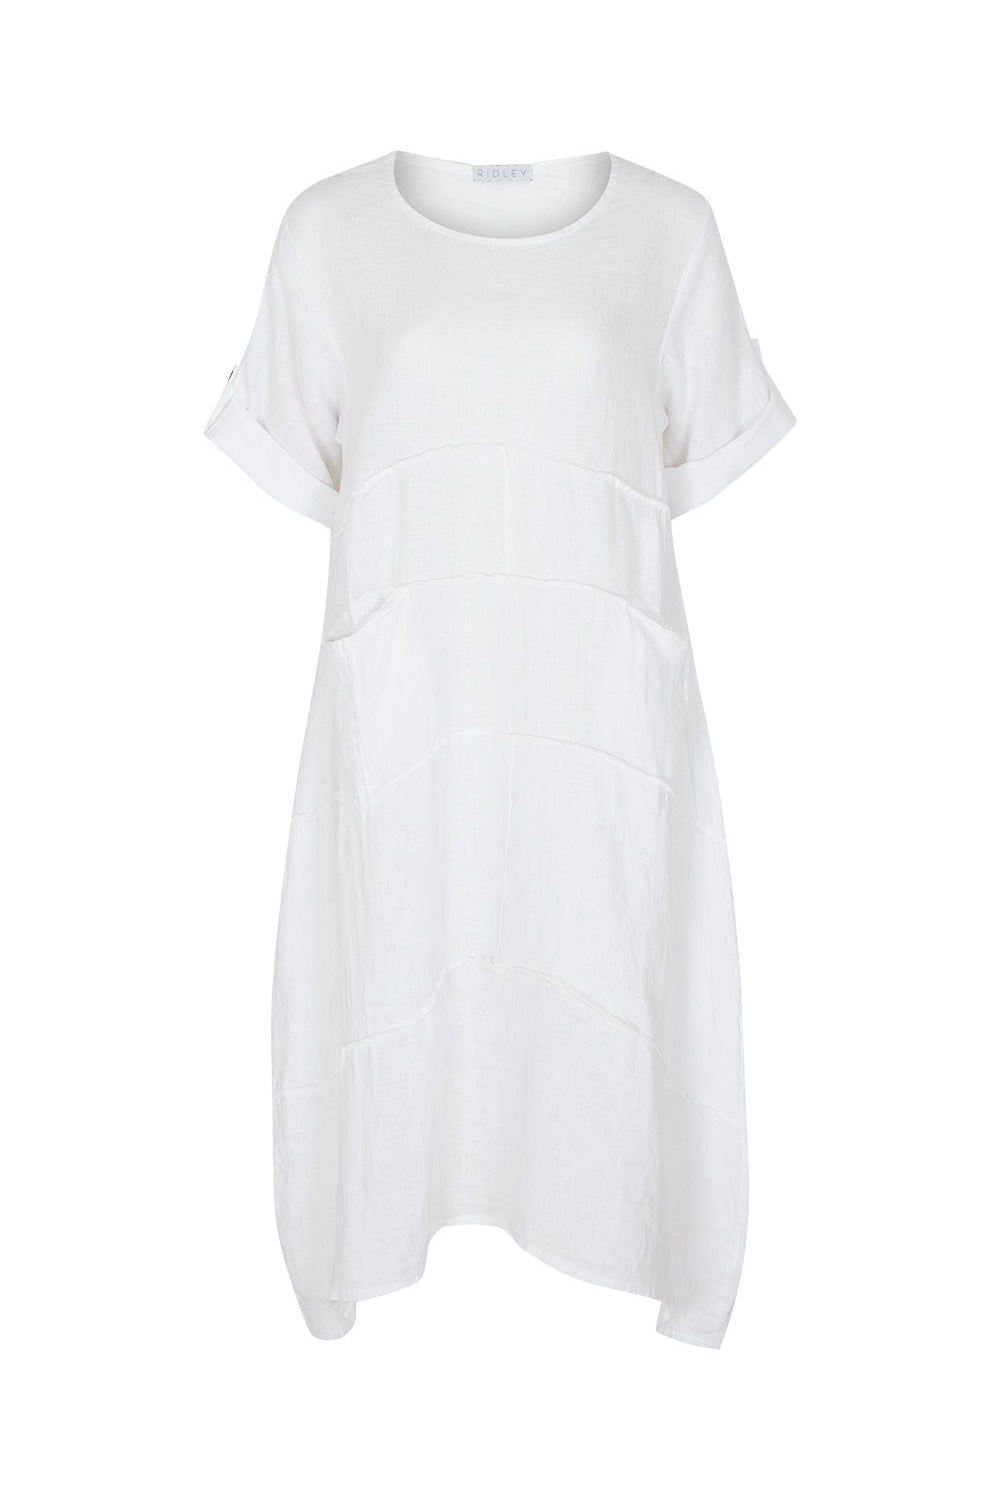 Come Together Dress - White | Ridley The Label at Wallace and Gibbs